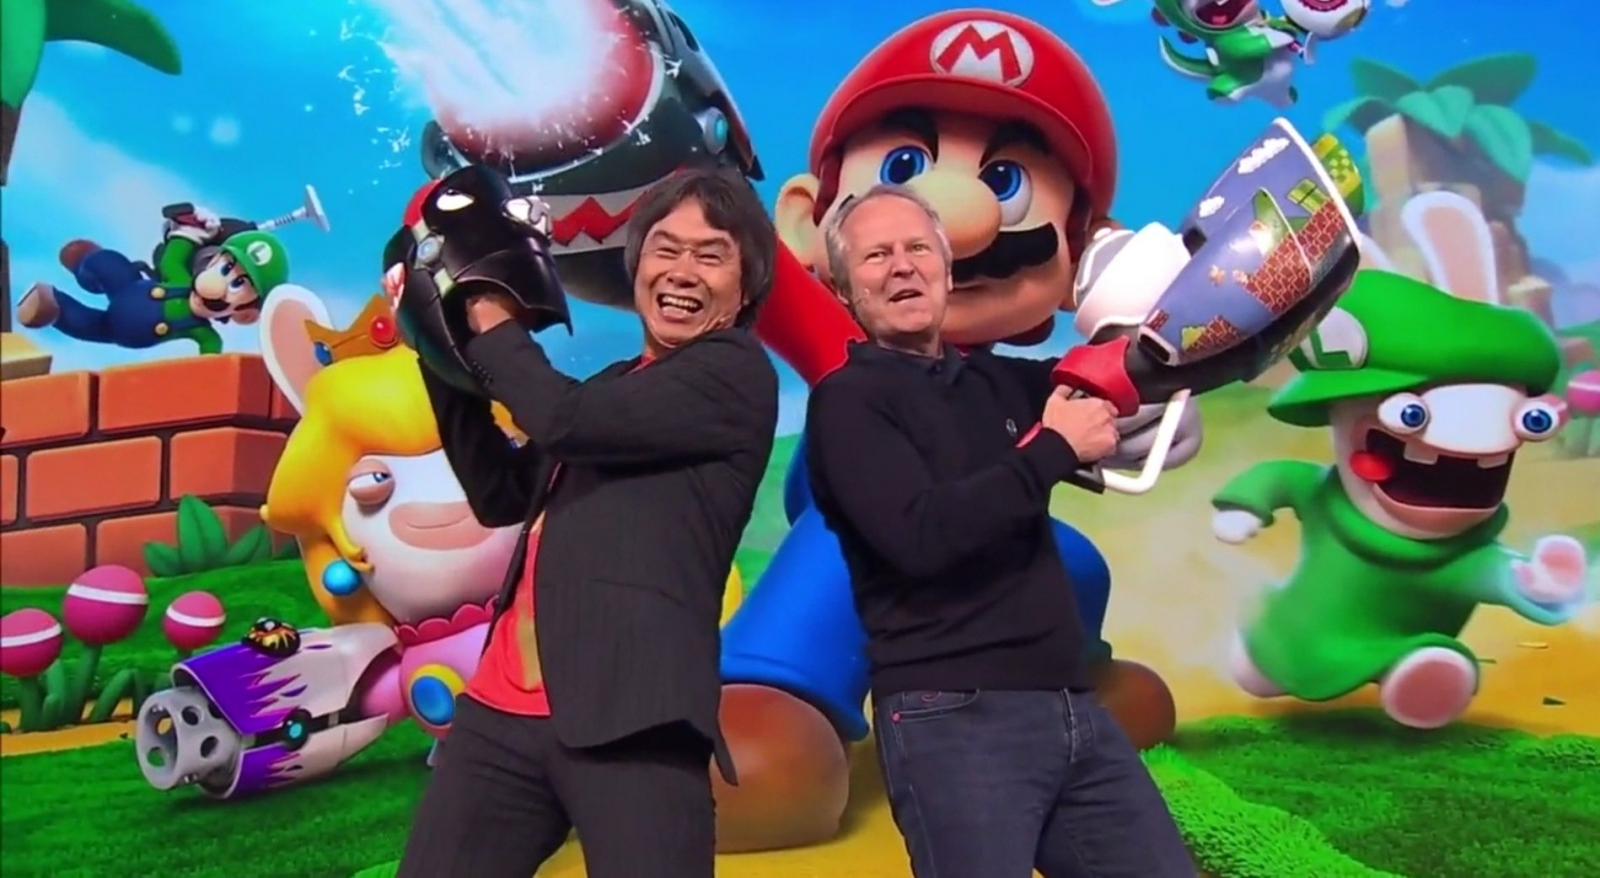 'Mario + Rabbids Kingdom Battle' Gets Official Release Date